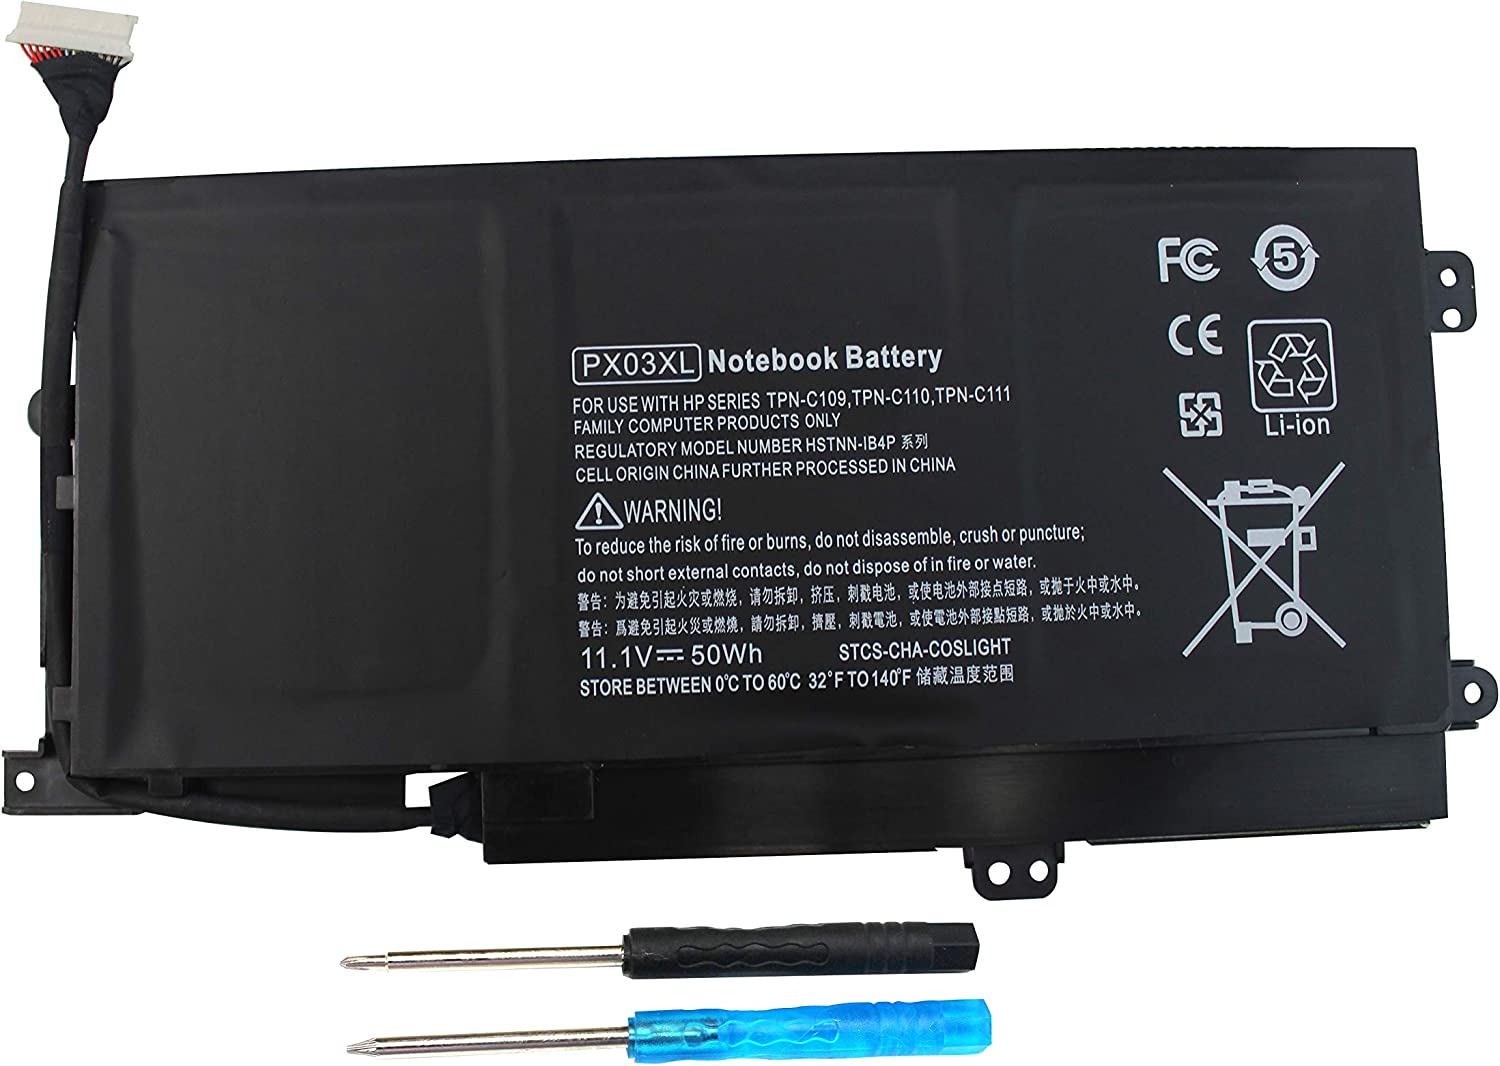 Shareway PX03XL 50Wh Replacement Laptop Battery for HP Envy 14 14-K010US 14-K027CL M6-K010DX M6-K015DX TPN C109/C110/C111 714762-421 714762-422